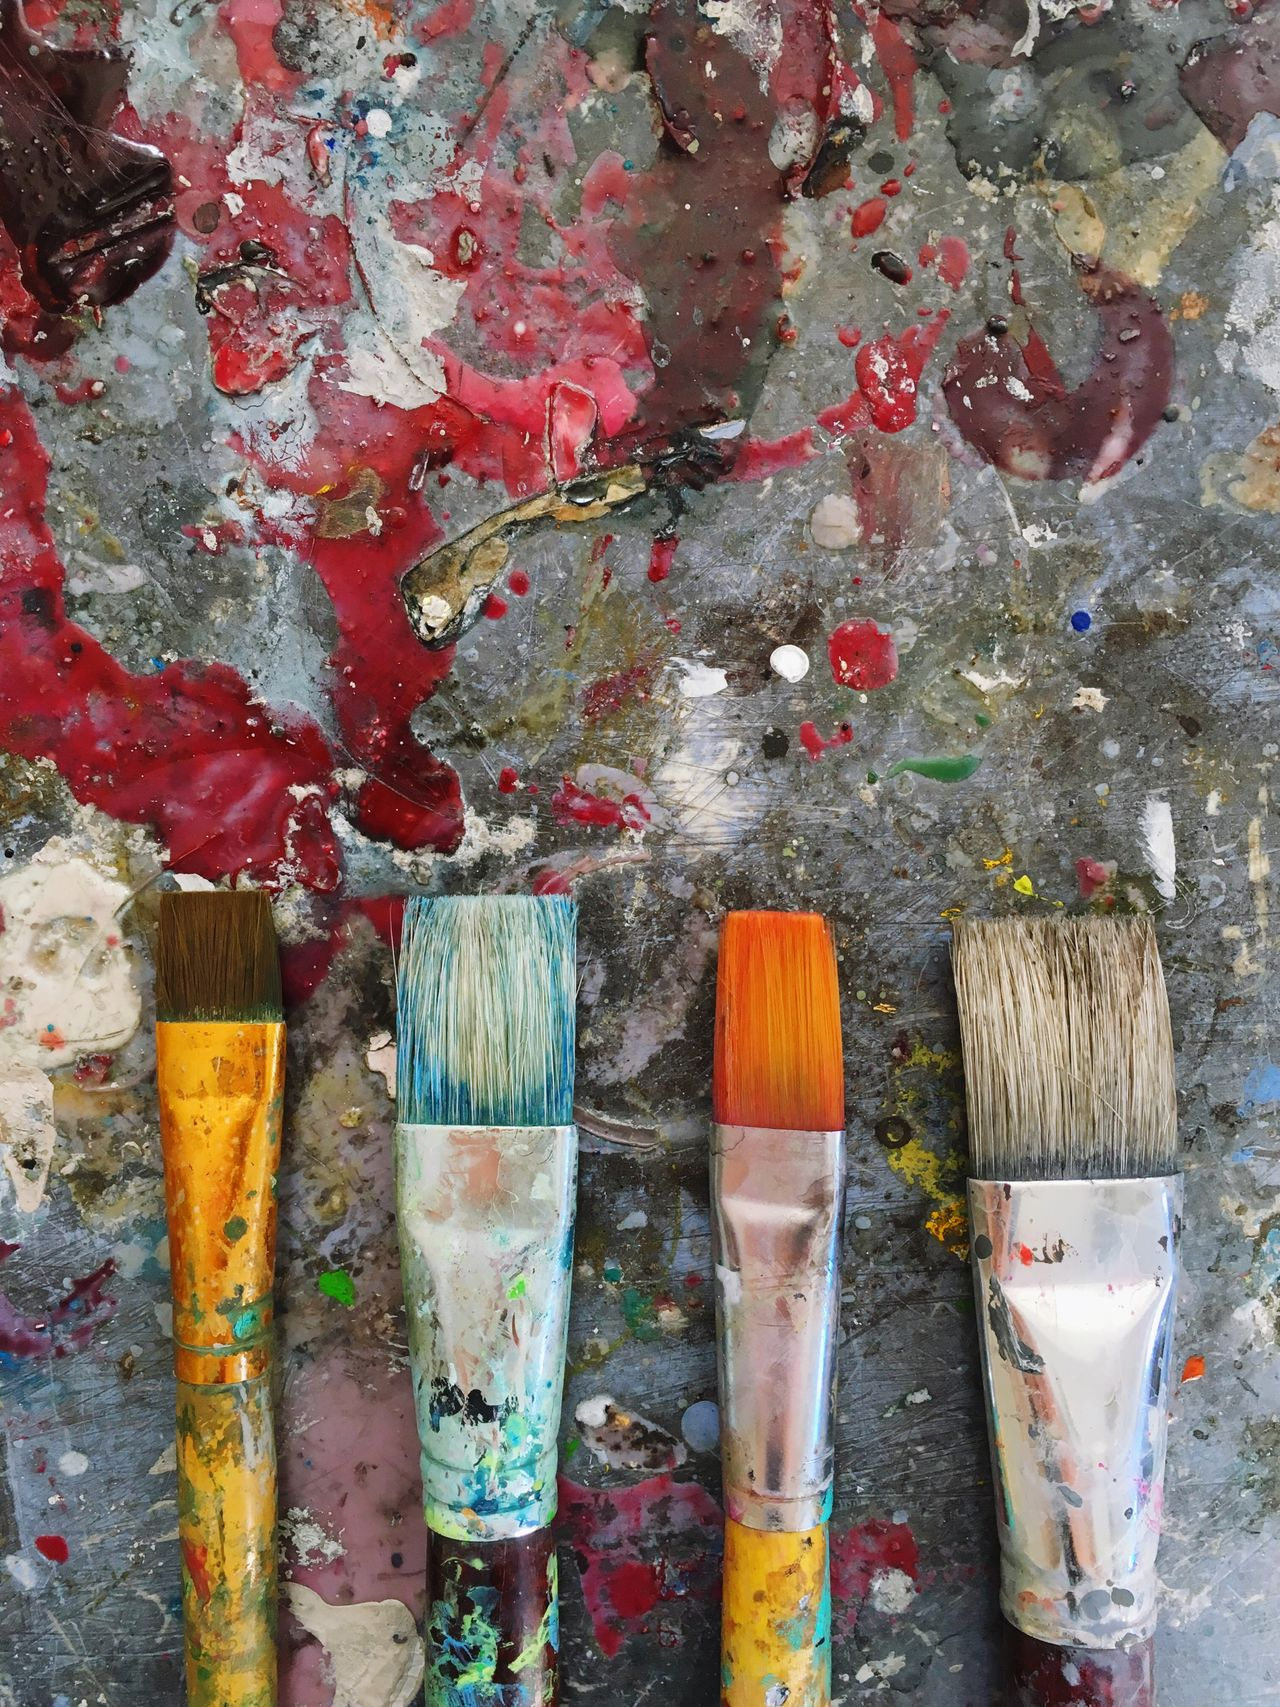 Brushes coverd with paint Paintbrush Paint Oil Paint Palette Multi Colored No People Indoors  Close-up Day Painter Architecture Brushes Work Tool Colorful Backgrounds Art Wood - Material Choice Indoors